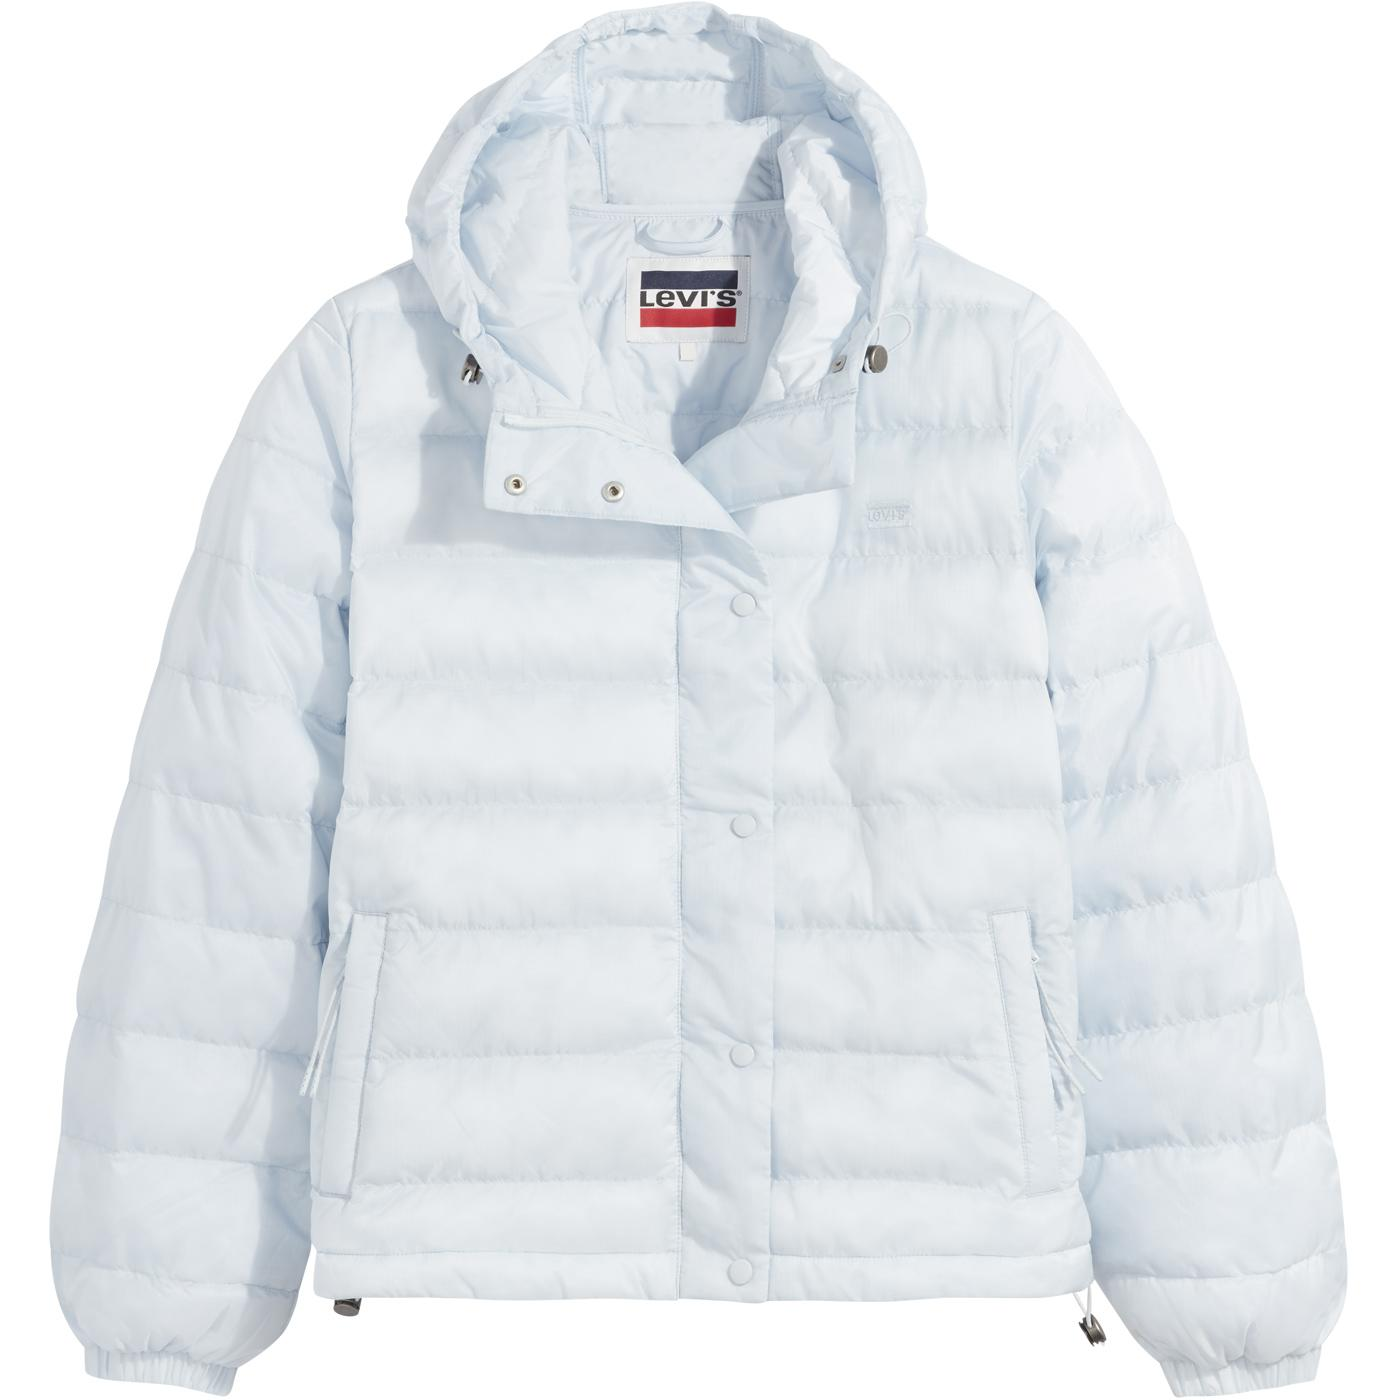 Edie LEVI'S Retro 90s Packable Quilted Jacket AIR